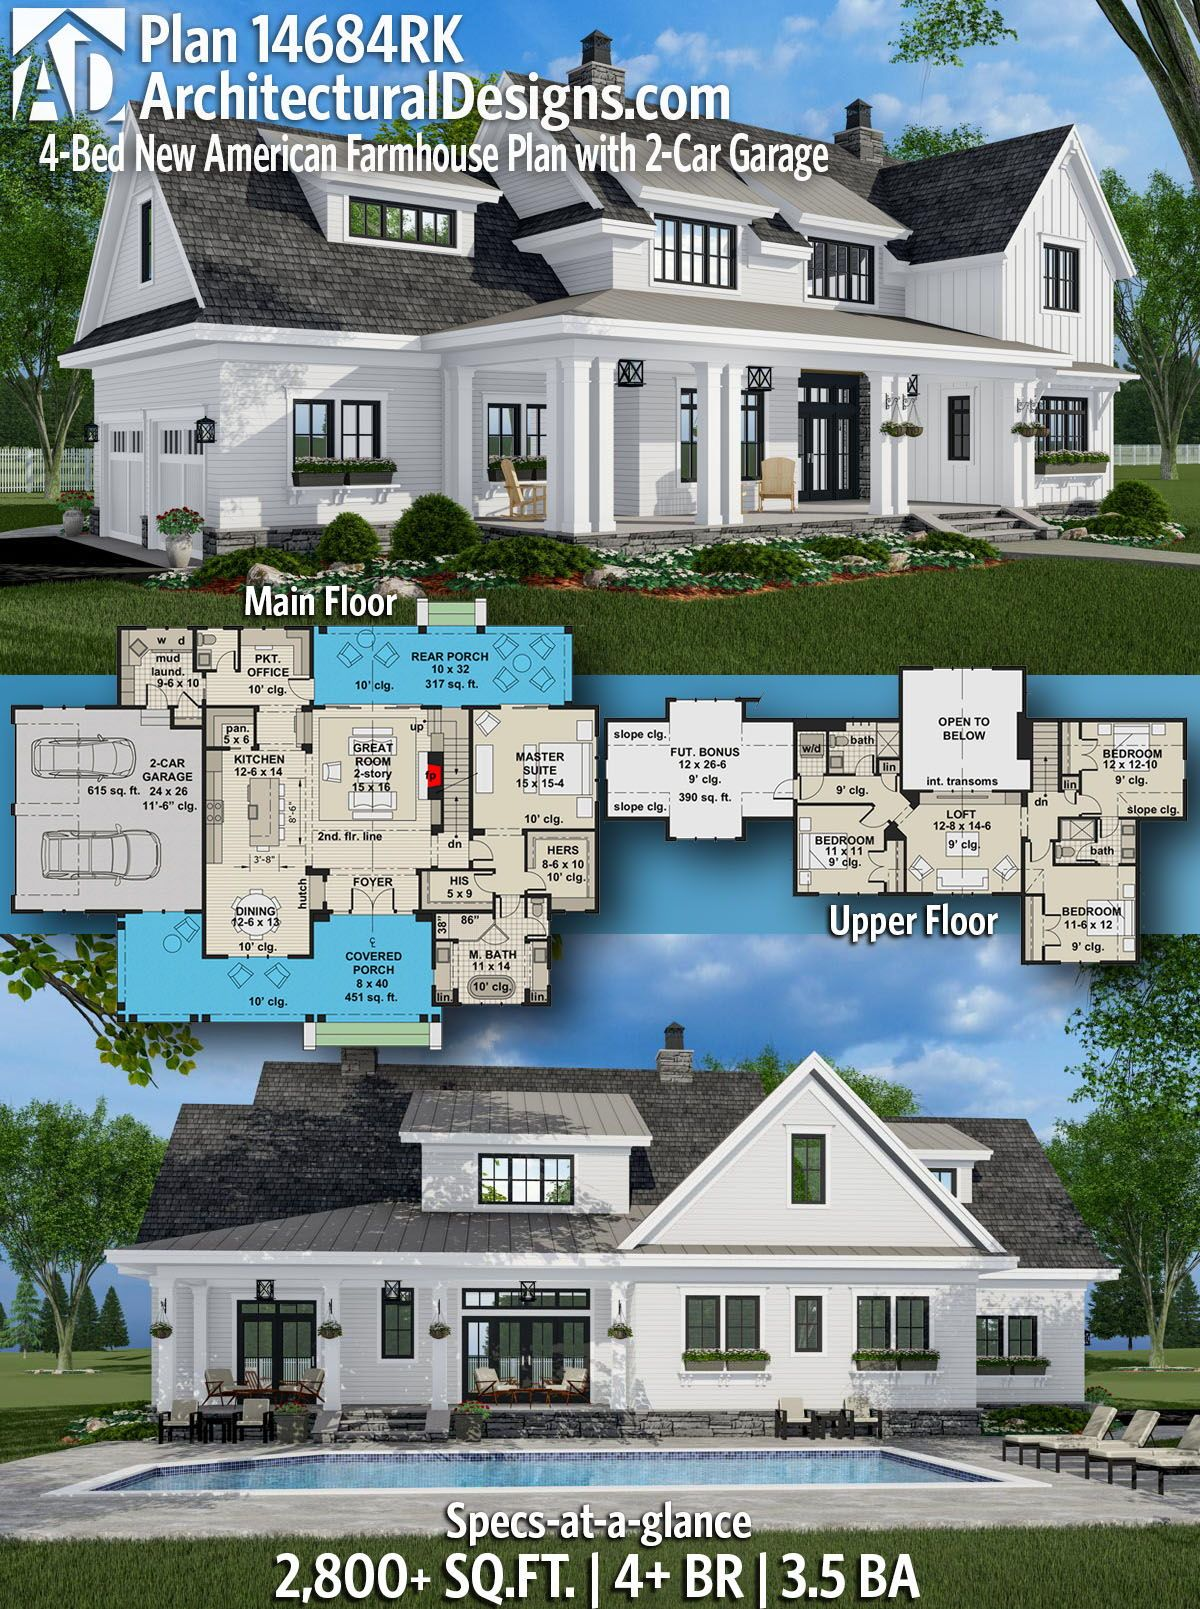 Plan 14684rk 4 Bed New American Farmhouse Plan With 2 Car Garage Modern Farmhouse Plans Family House Plans House Plans Farmhouse